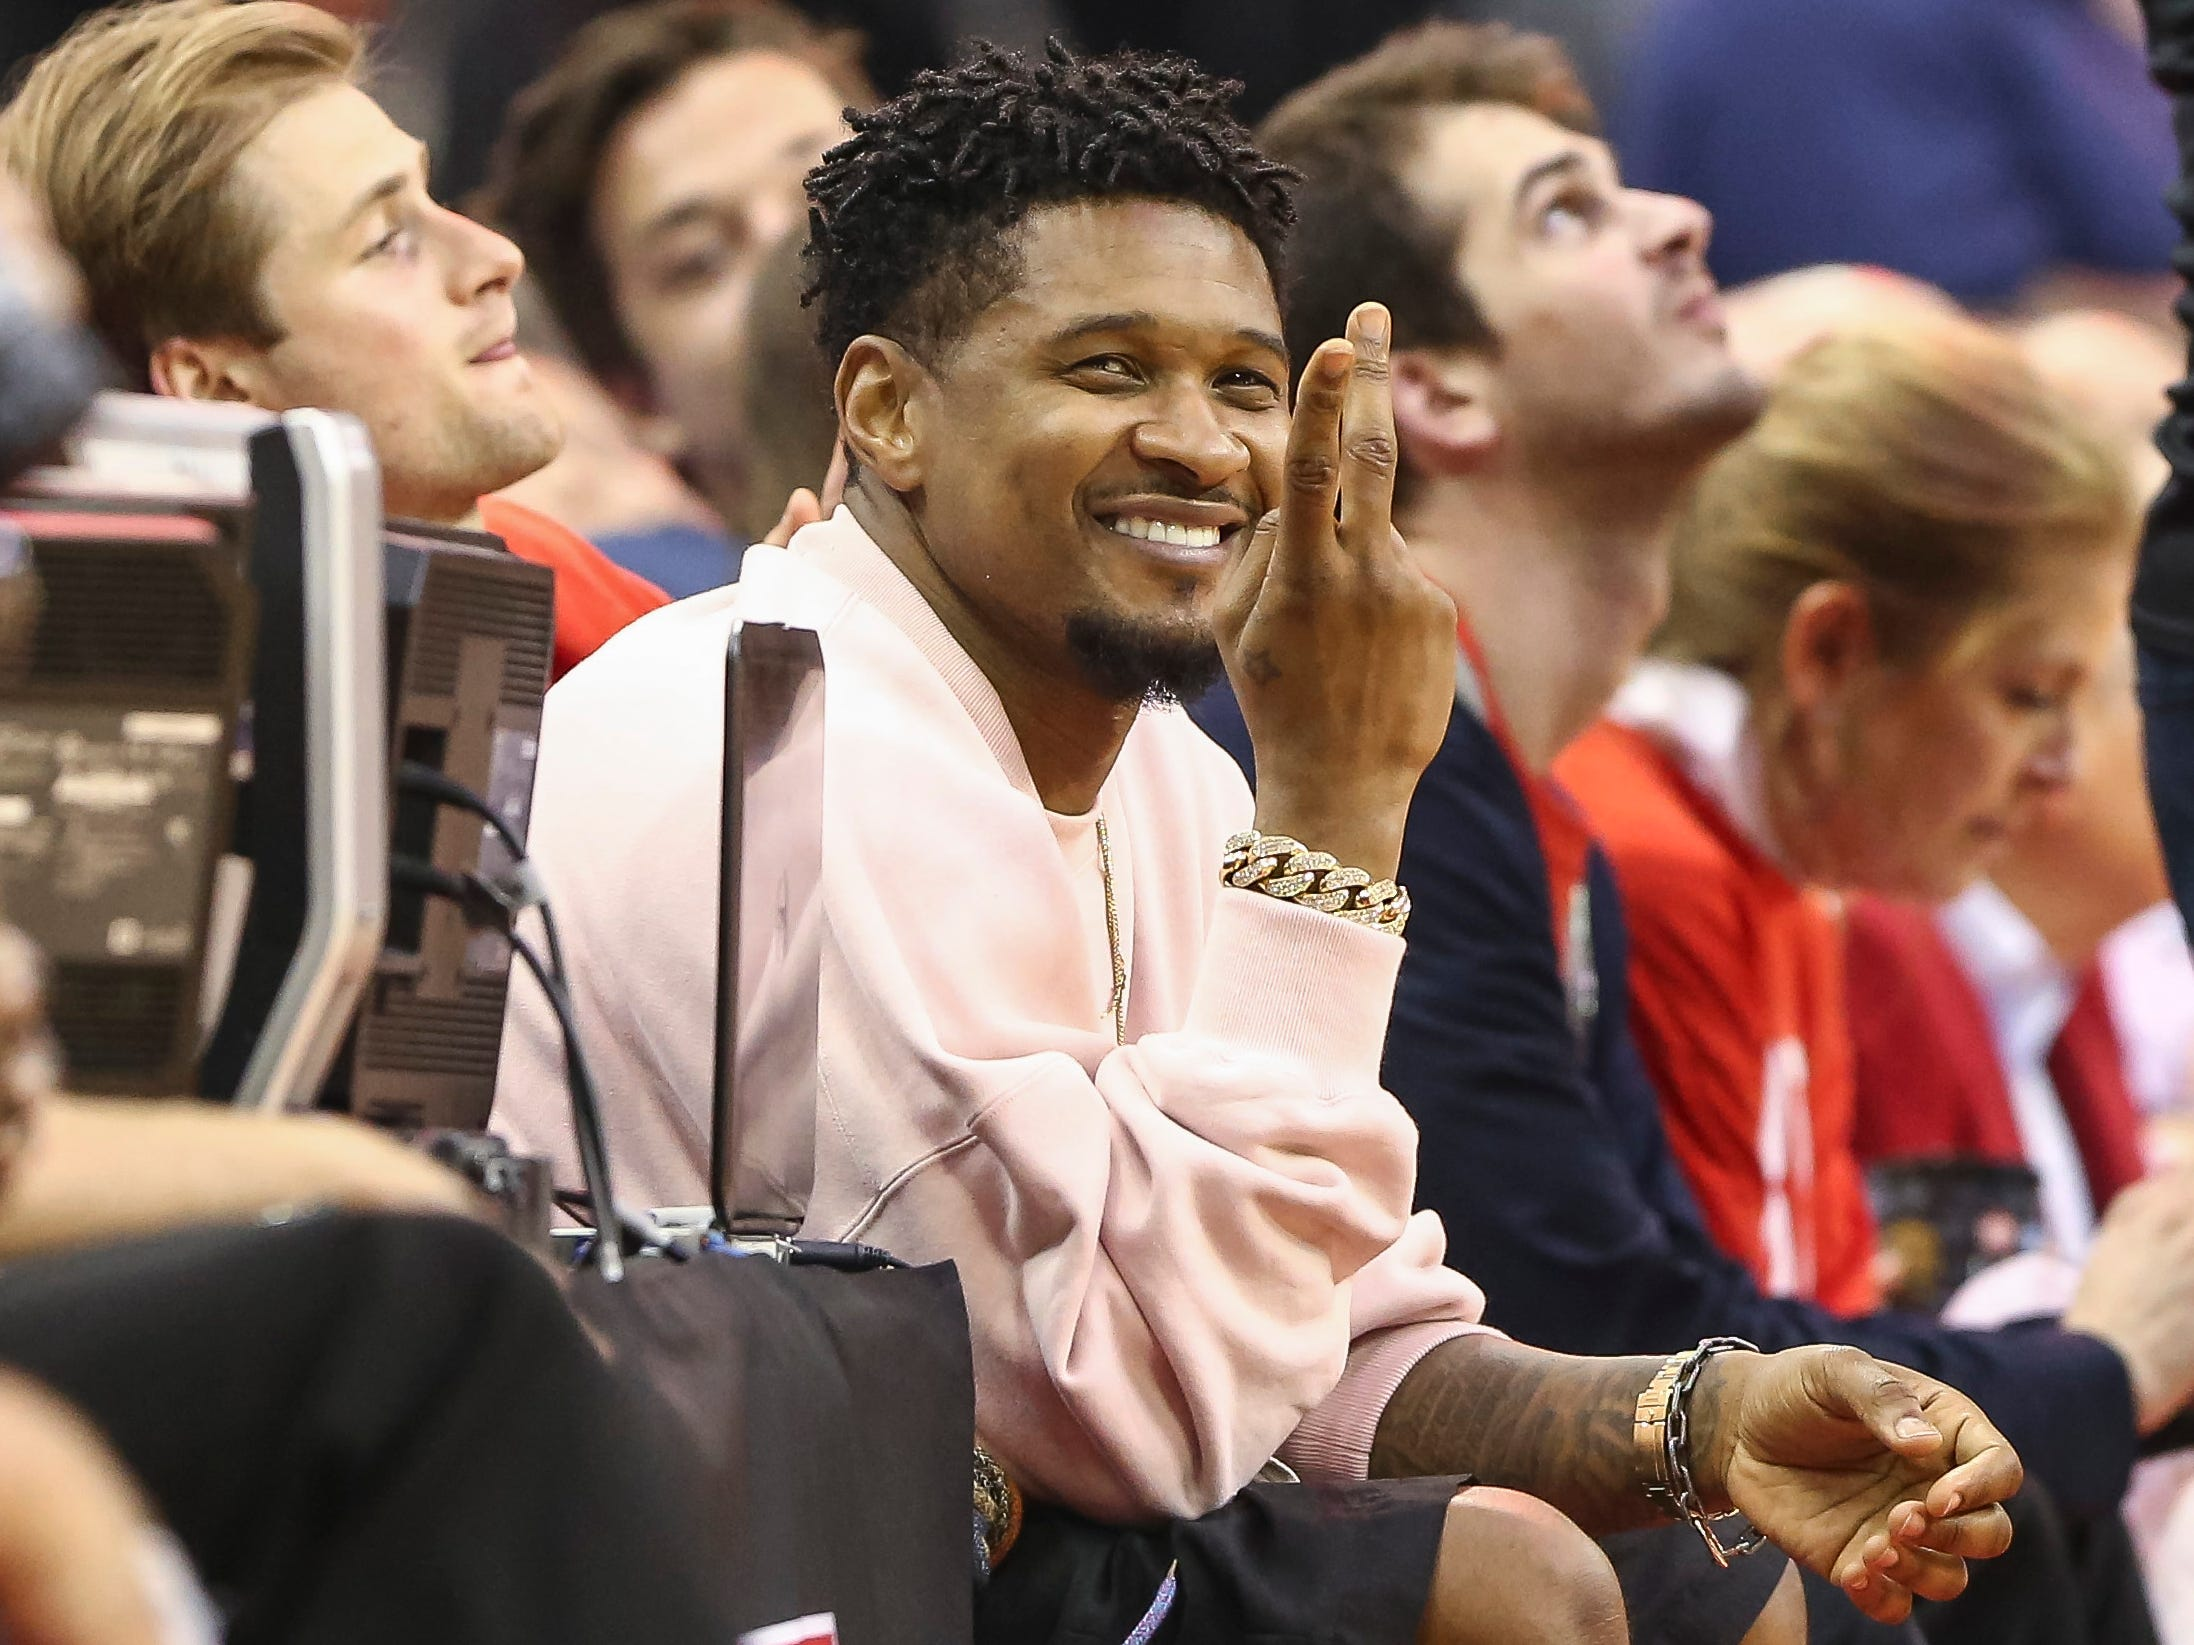 May 6: Singer Usher takes in Game 4 between the Rockets and Warriors in Houston.